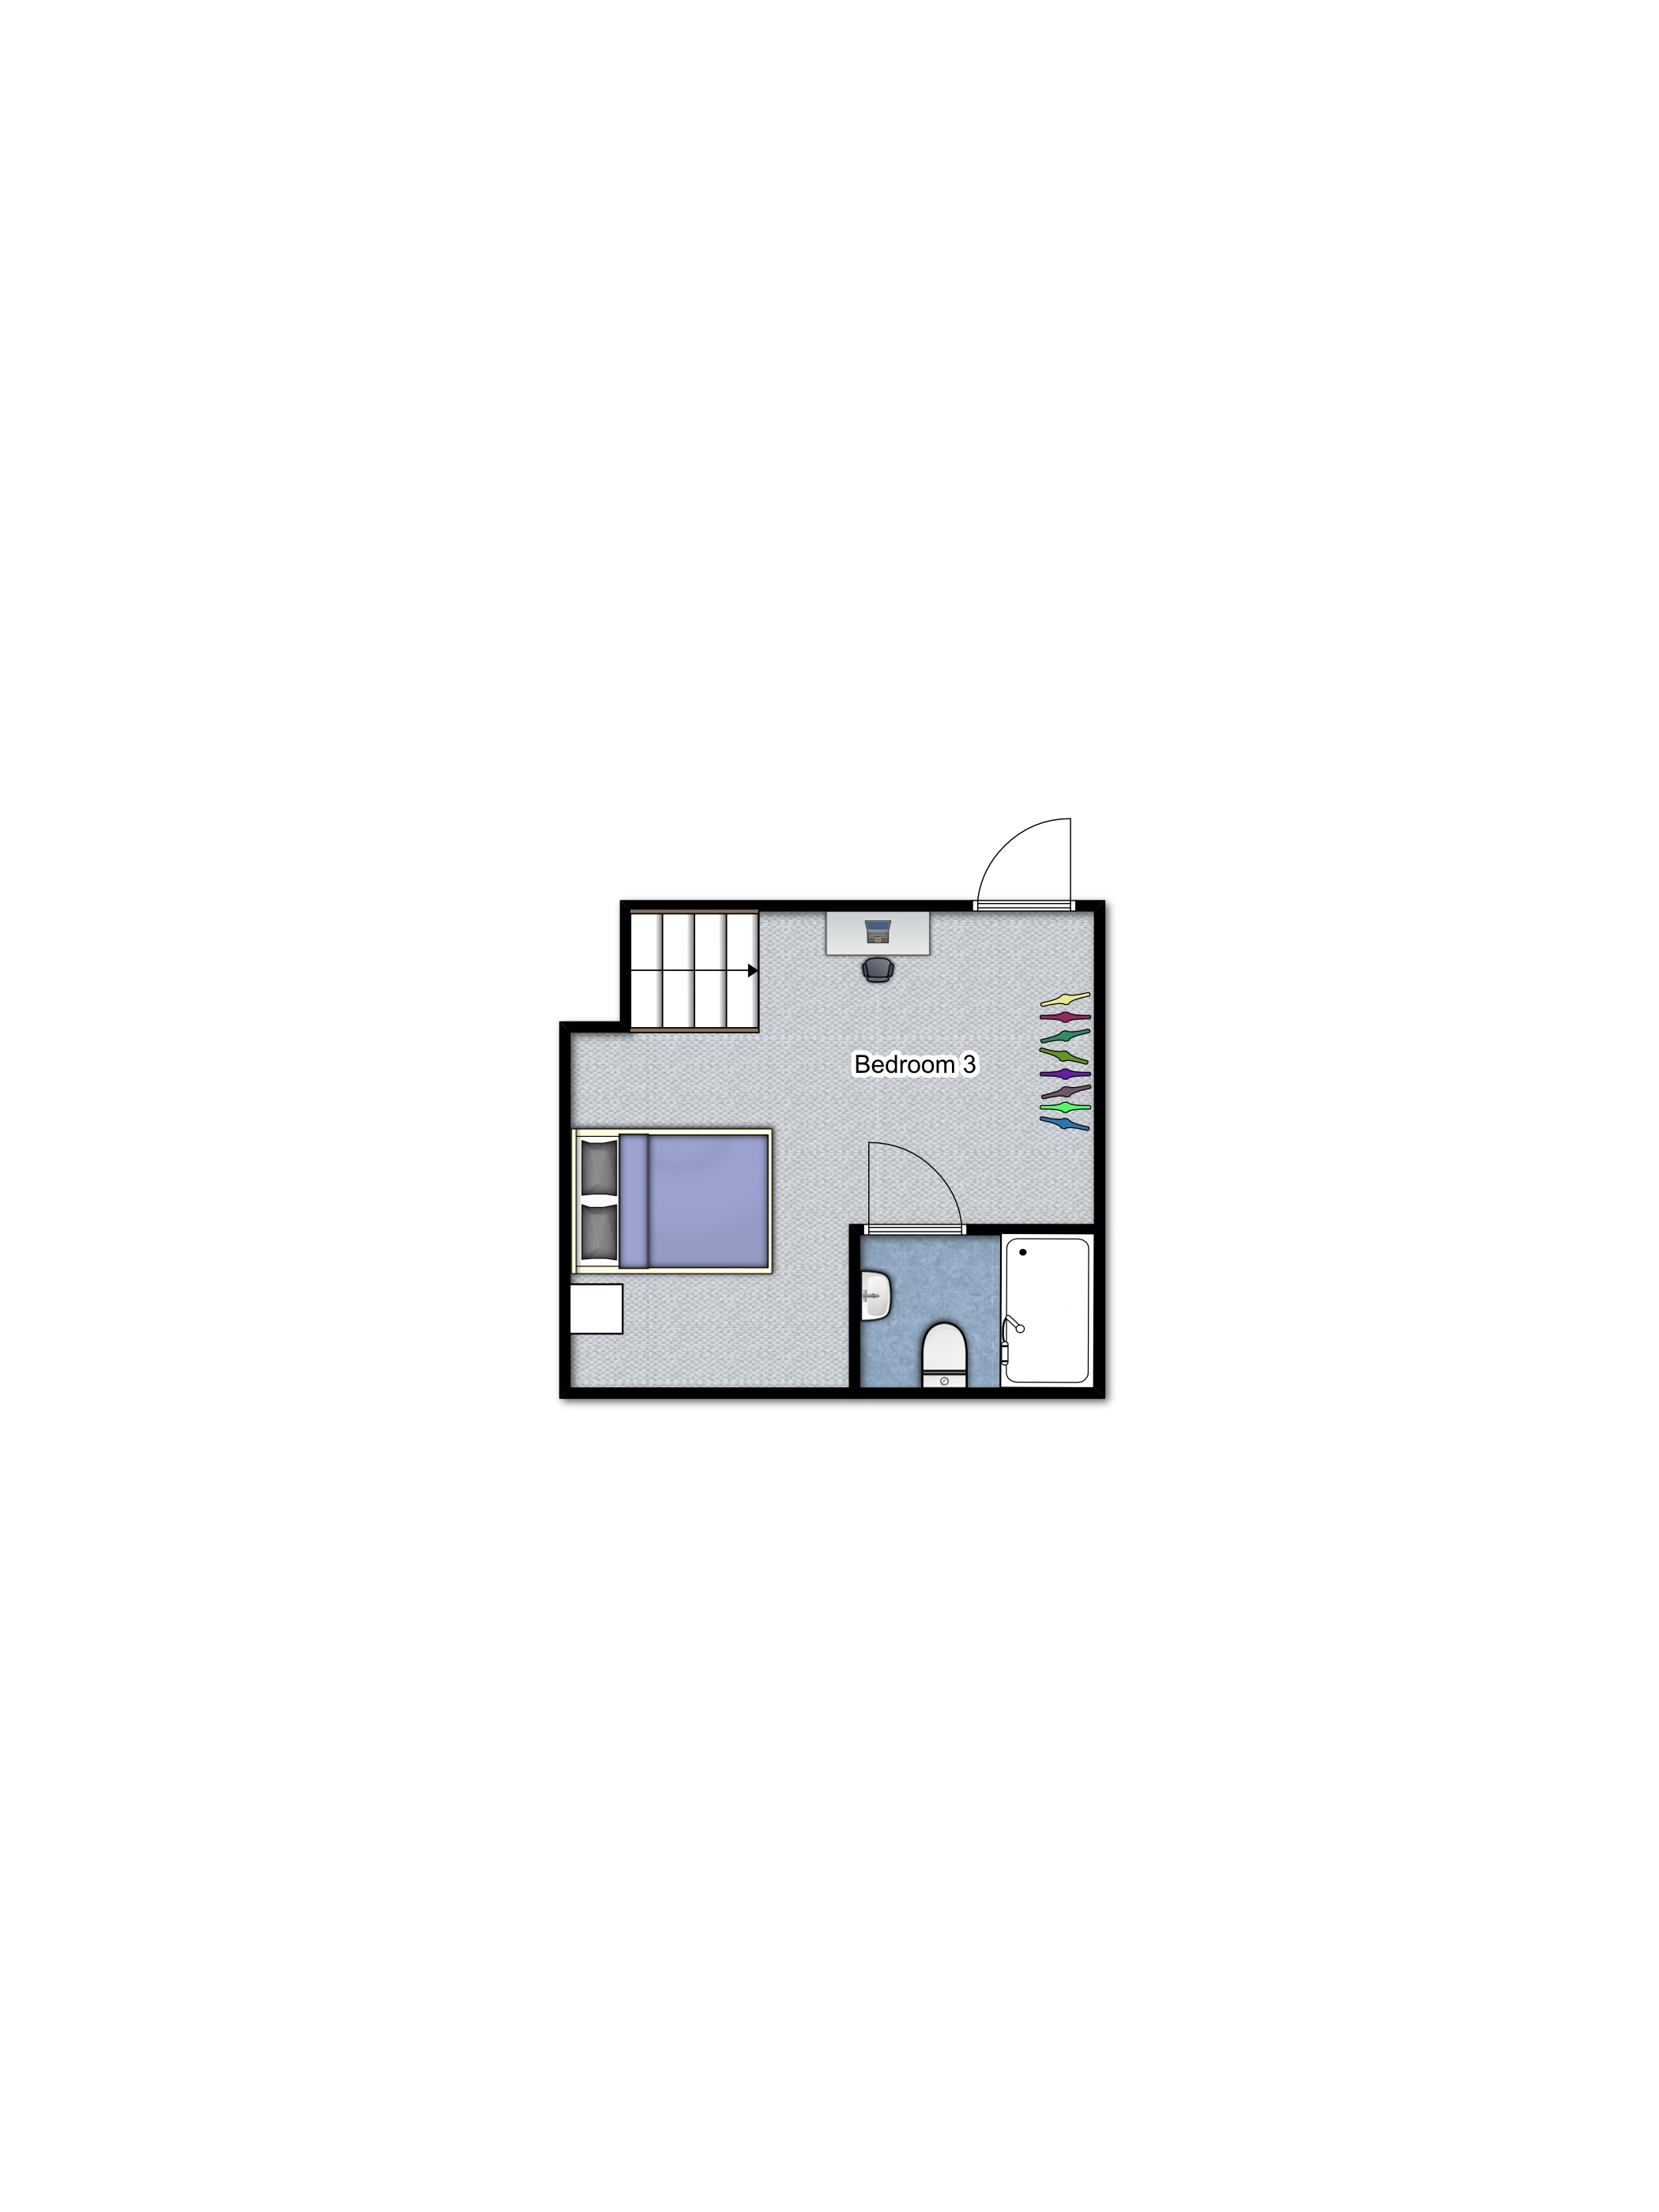 Summerhill Basement floorplan